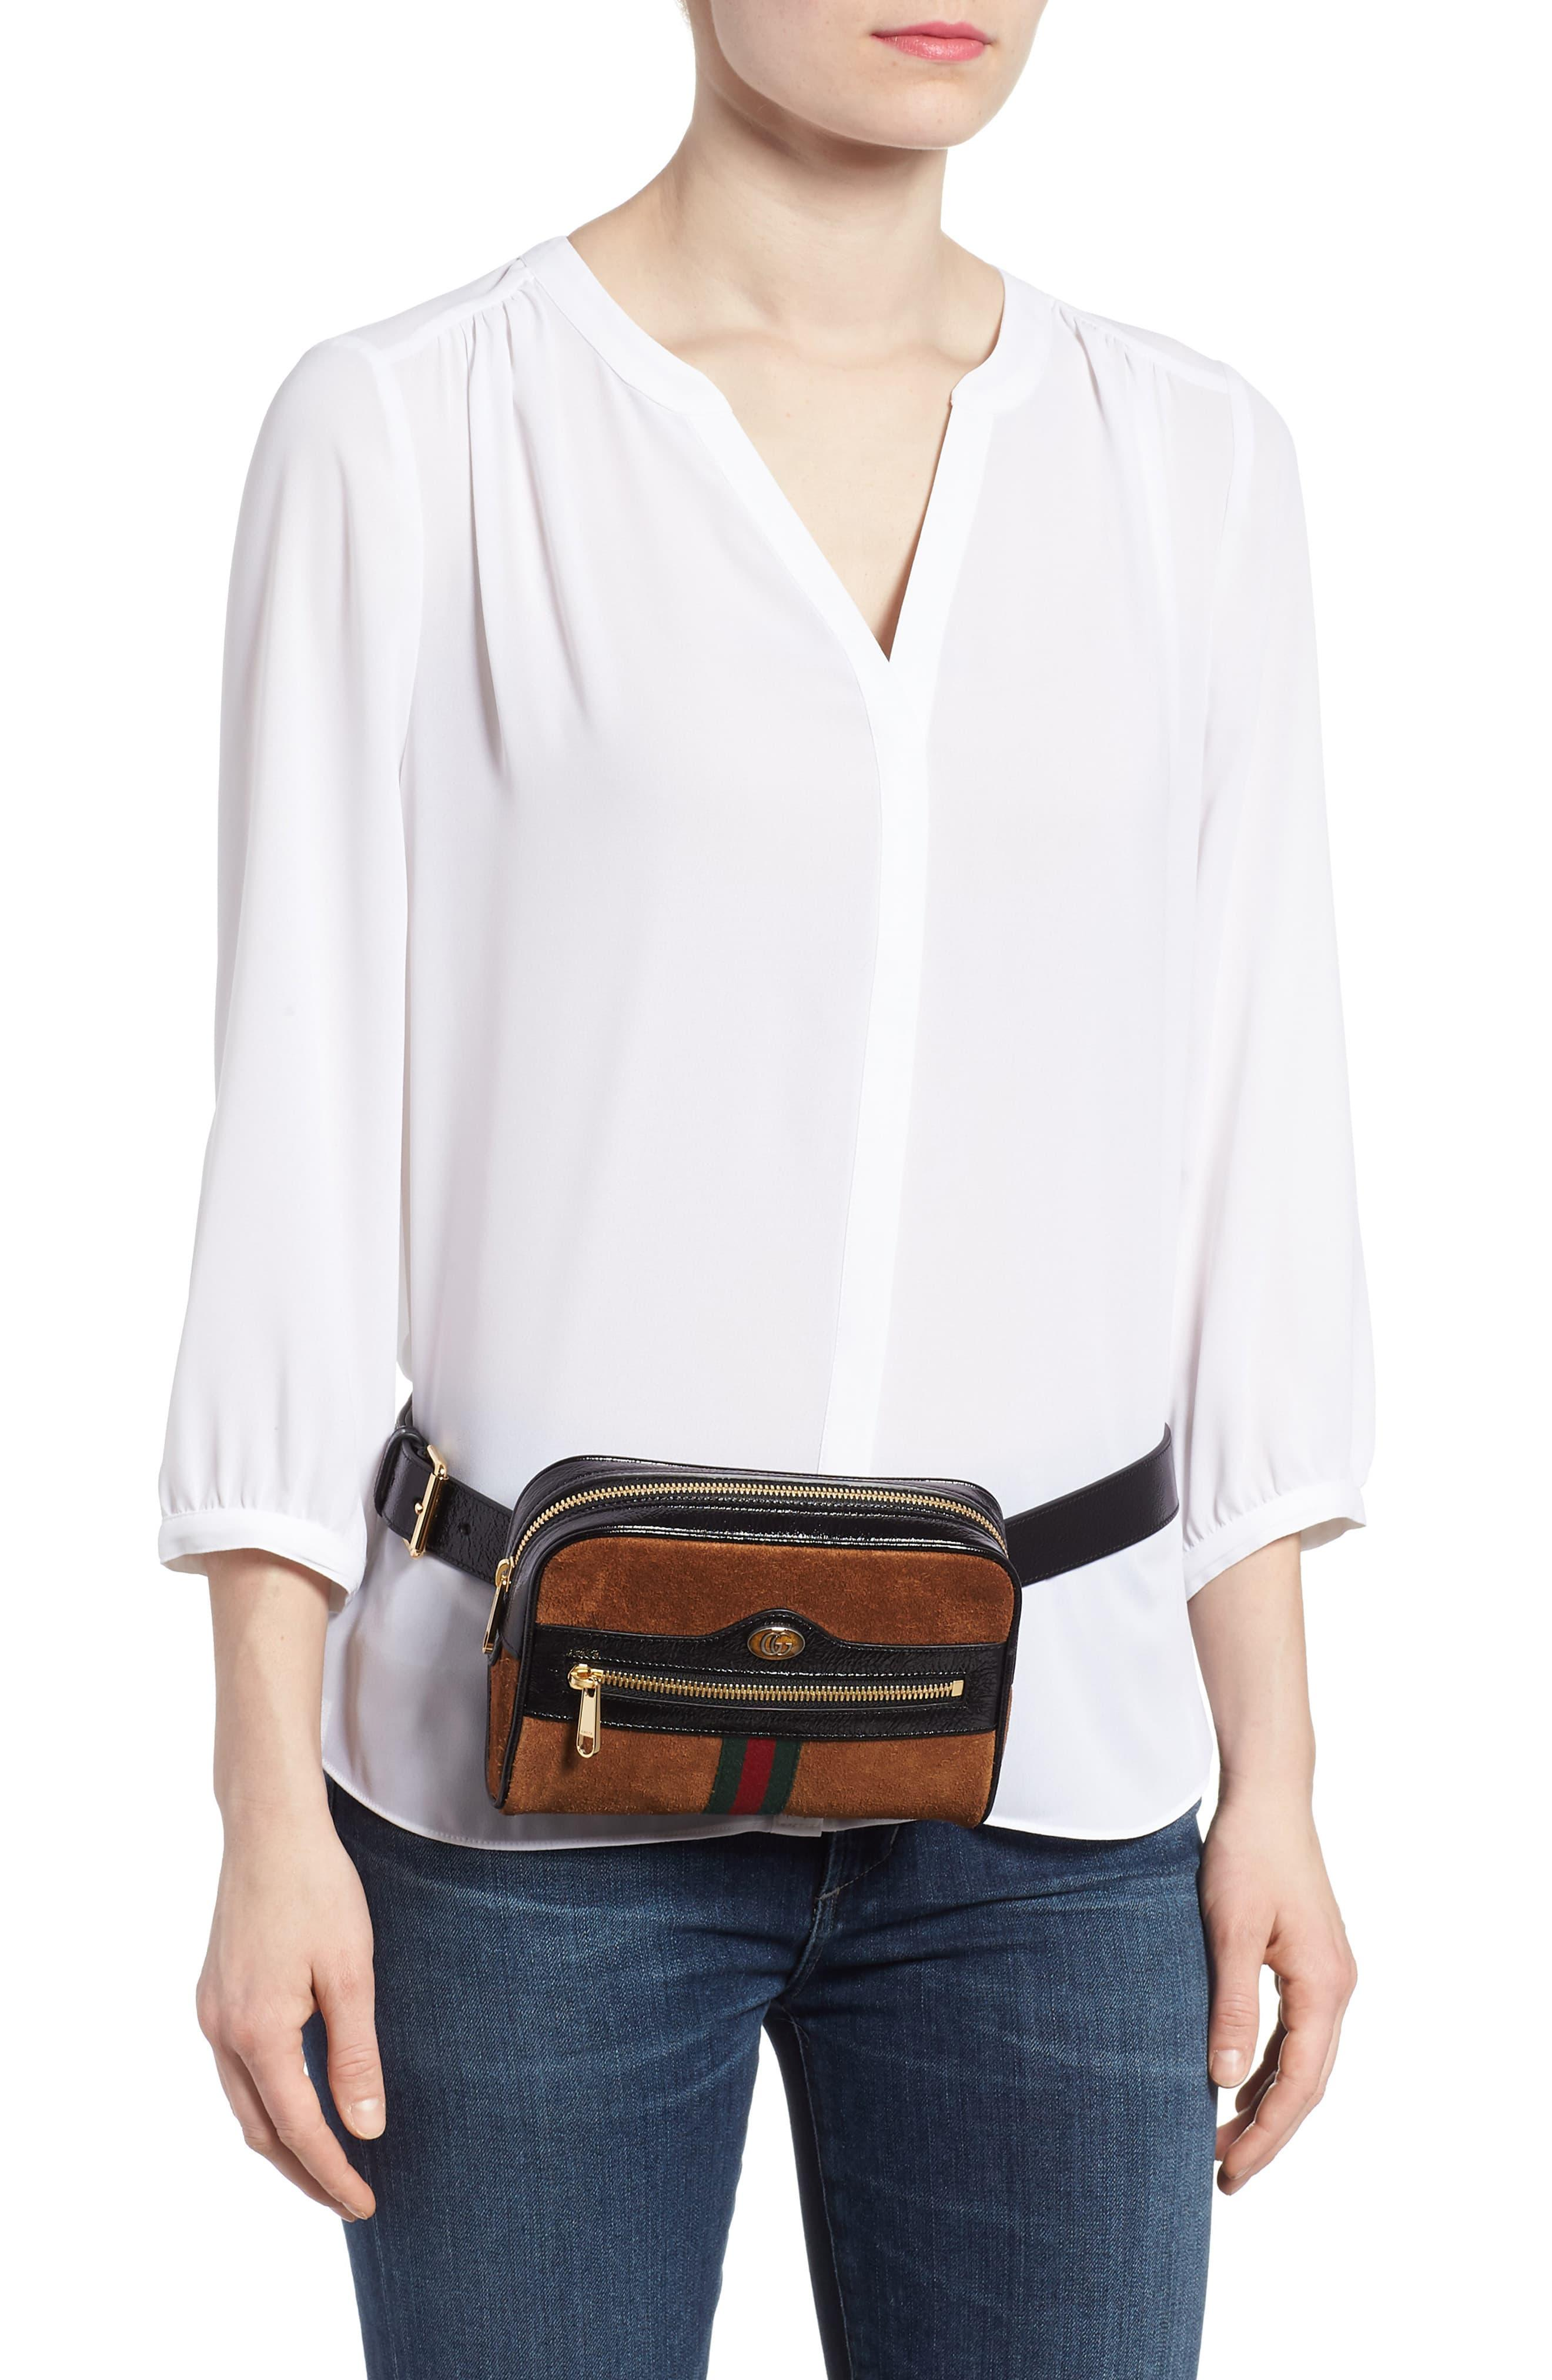 74f8033e67d7e4 ... Ophidia Small Suede Belt Bag - Lyst. View fullscreen